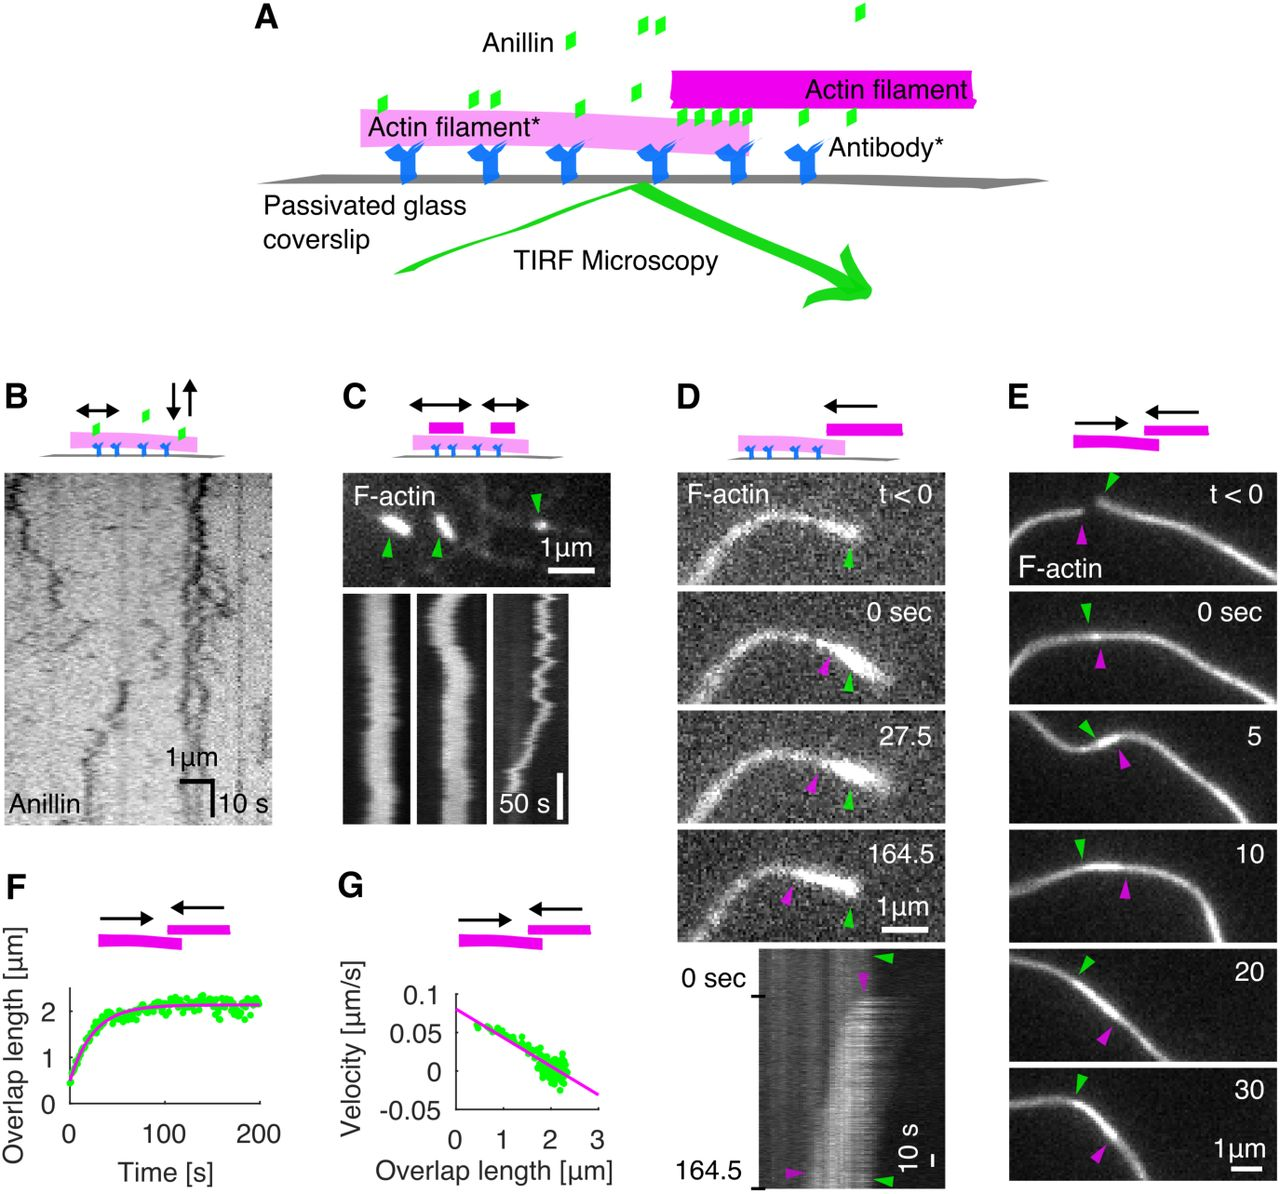 Anillin slides actin filaments to maximize their overlap. ( A ) Schematic representation of the experimental setup. The asterisk denotes components used only in experiments with immobilised filaments. ( B ) Intensity-inverted kymograph showing single anillin-GFP molecules diffusing along an actin filament. ( C ) Fluorescence micrograph (top) showing three short mobile actin filaments (indicated by green arrowheads) crosslinked by anillin-GFP (not visualized) to long, sparsely <t>fluorescently</t> labelled, immobilised actin filaments (see Movie S1). Kymographs (bottom) show the diffusion of mobile actin filaments from the micrograph above along the immobilised filaments. ( D ) Time-lapse micrographs (top) and a kymograph (bottom) showing anillin-driven sliding of a mobile actin filament (bright) along an immobilised filament (dim), increasing the overlap between the two actin filaments (see Movie S2). Green and magenta arrowheads indicate the ends of the immobilised and mobile filaments, respectively. This experiment was repeated 5 times (8 events observed) with similar results. ( E ) Time-lapse micrographs showing anillin-driven sliding of two mobile actin filaments along each other, increasing the overlap between the two actin filaments (see Movie S3). Arrowheads indicate the filaments' ends. This experiment was repeated 15 times (24 events observed) with similar results. ( F ) A typical time trace of the overlap expansion (green dots) reaching an equilibrium value (magenta line represents an exponential fit (Methods) to the data). ( G ) Velocity of the overlap expansion decreases with increasing overlap length. Green points represent an exemplary event, magenta line is a linear fit to the data.